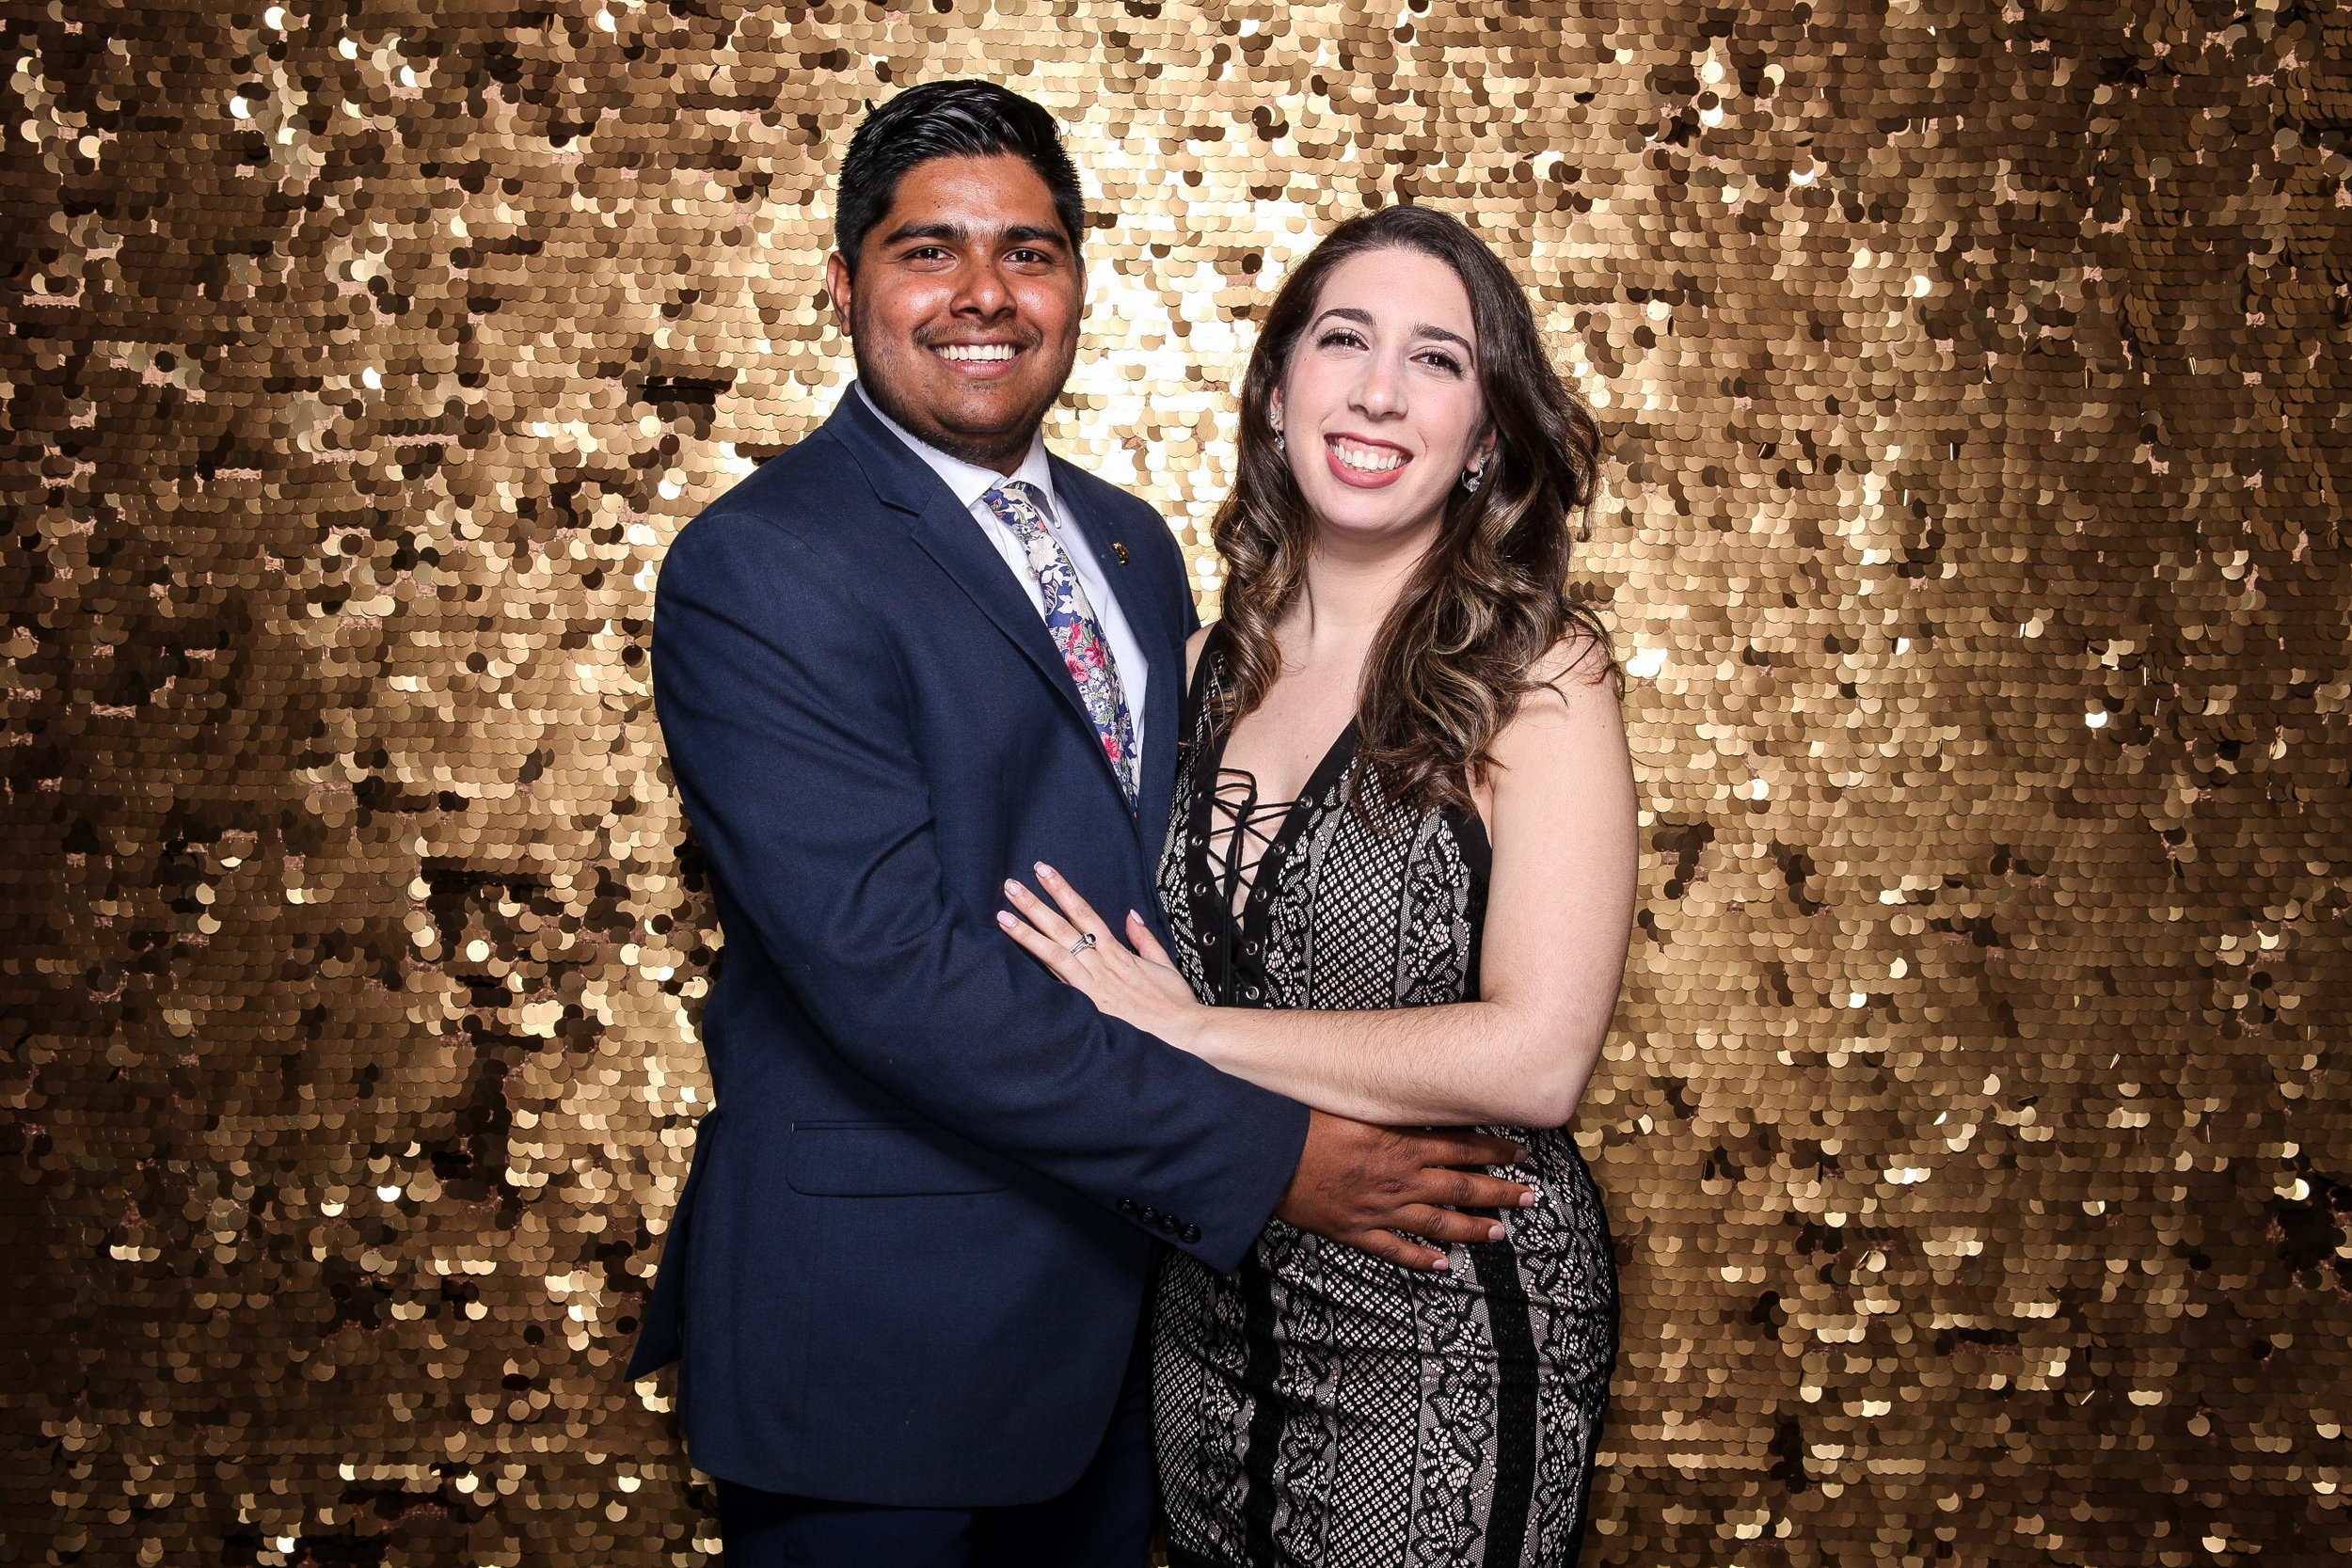 20190503_Adelphi_Senior_Formal-135.jpg